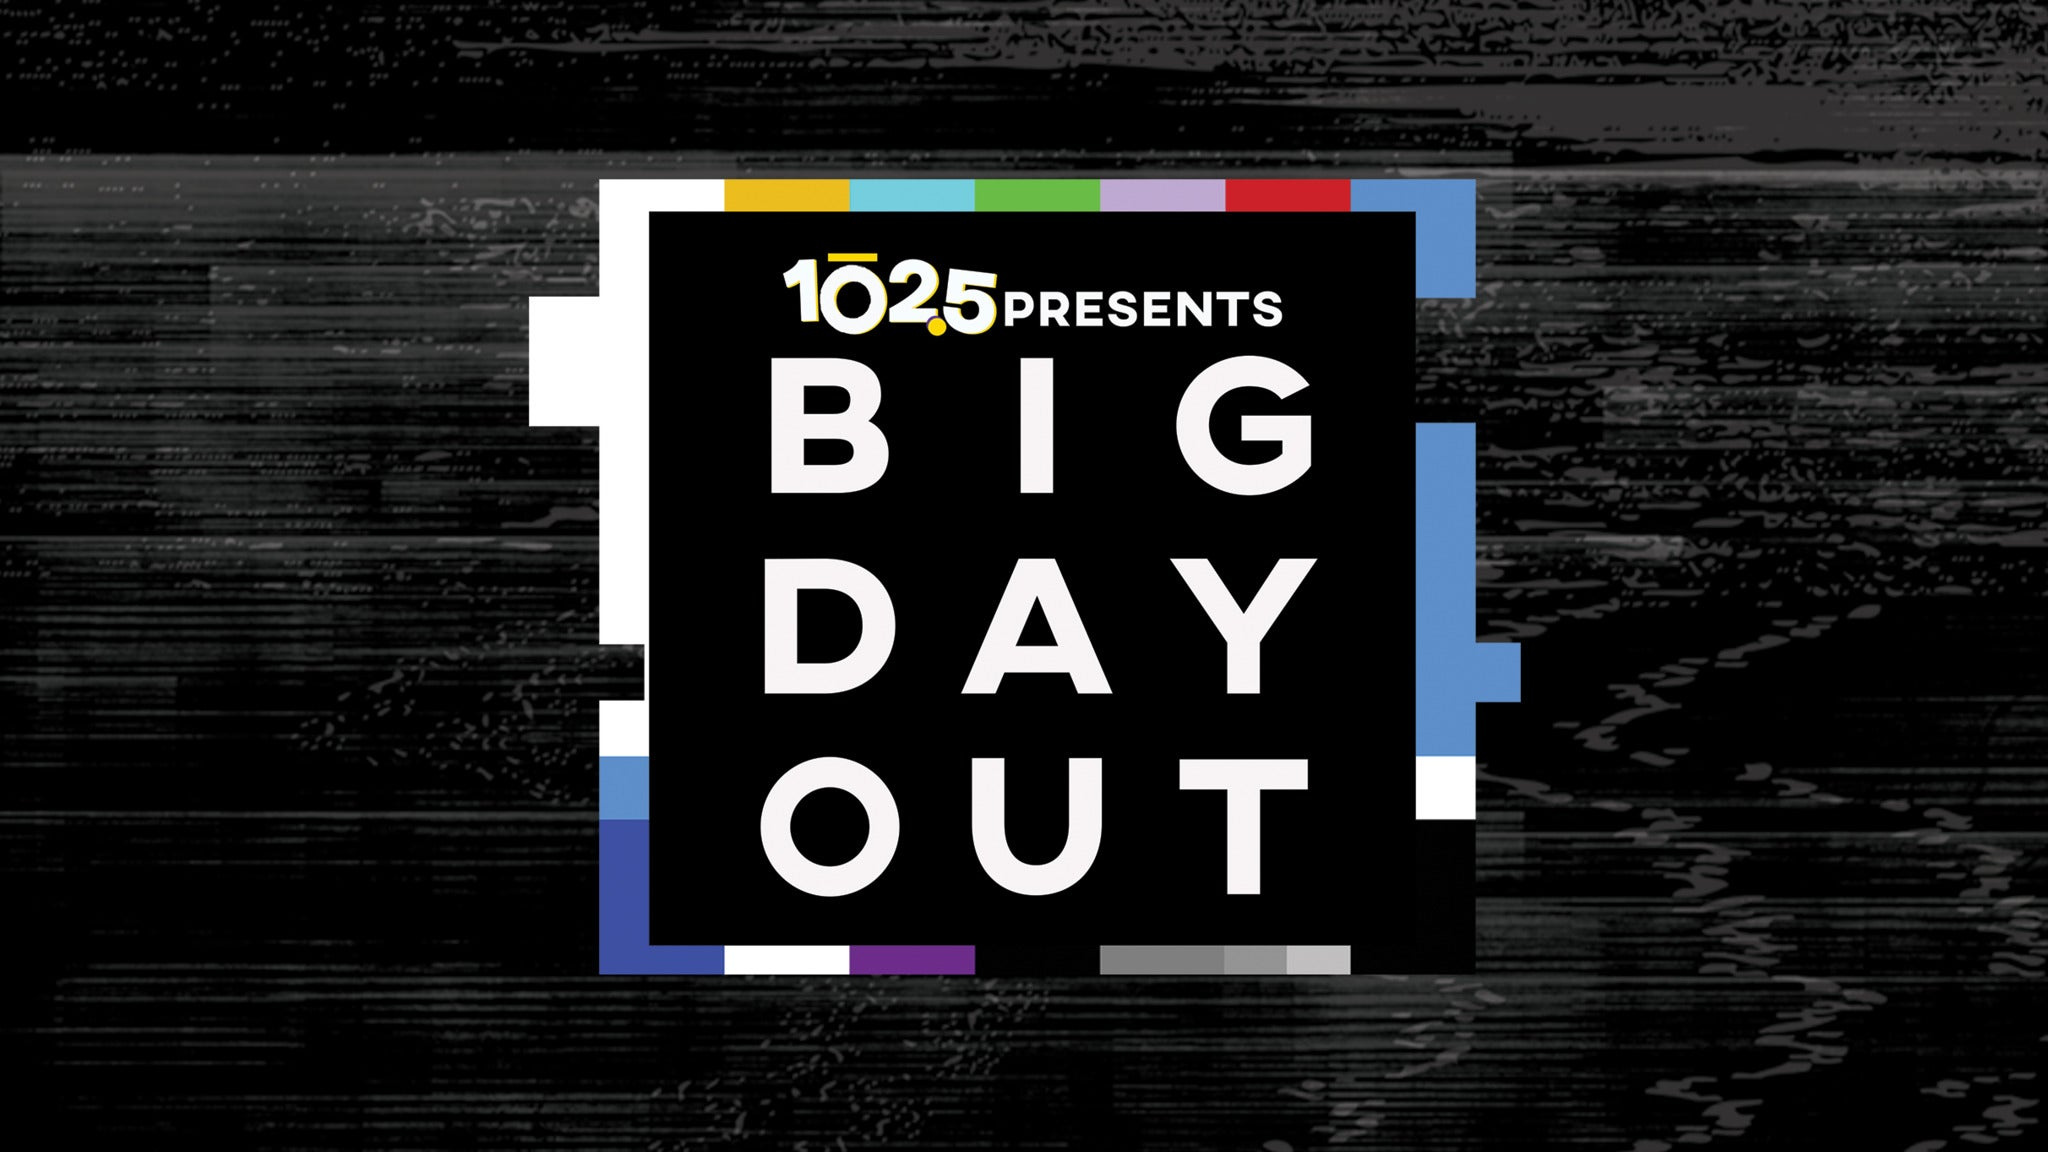 102.5 presents BIG DAY OUT powered by Metro PCS - Wheatland, CA 95692